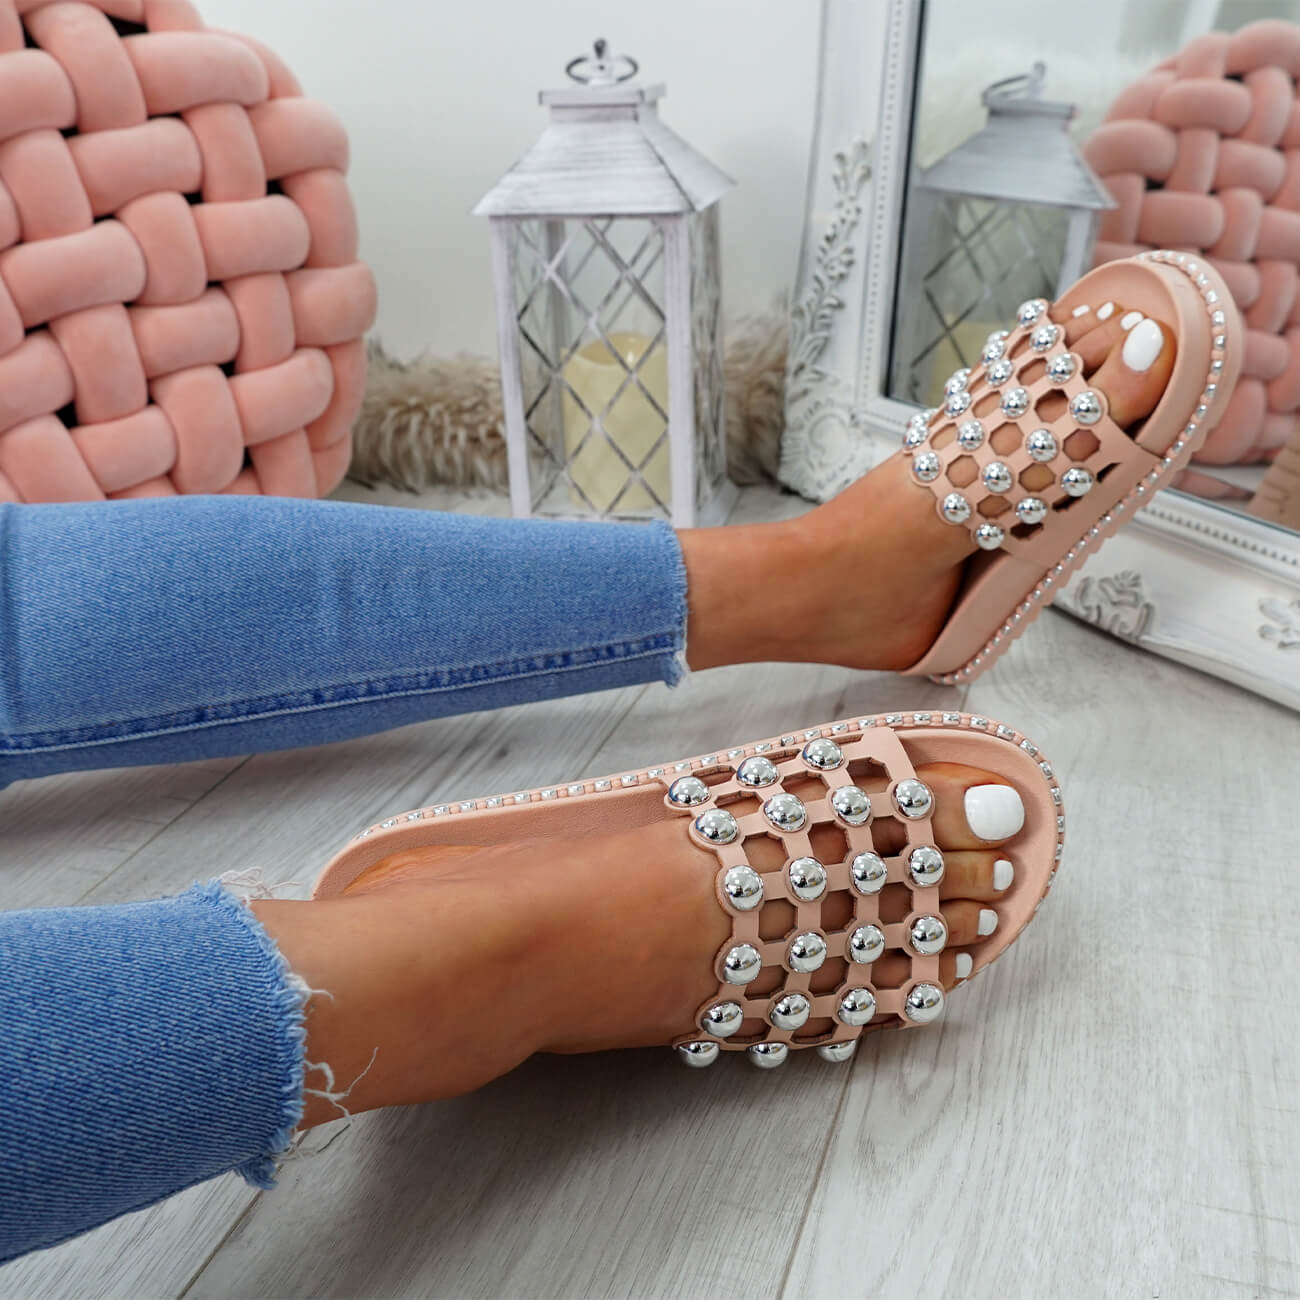 WOMENS-LADIES-PEARL-STUDDED-SLIP-ON-FLAT-SANDALS-HEELS-FLIP-FLOP-SHOES-SIZE thumbnail 15